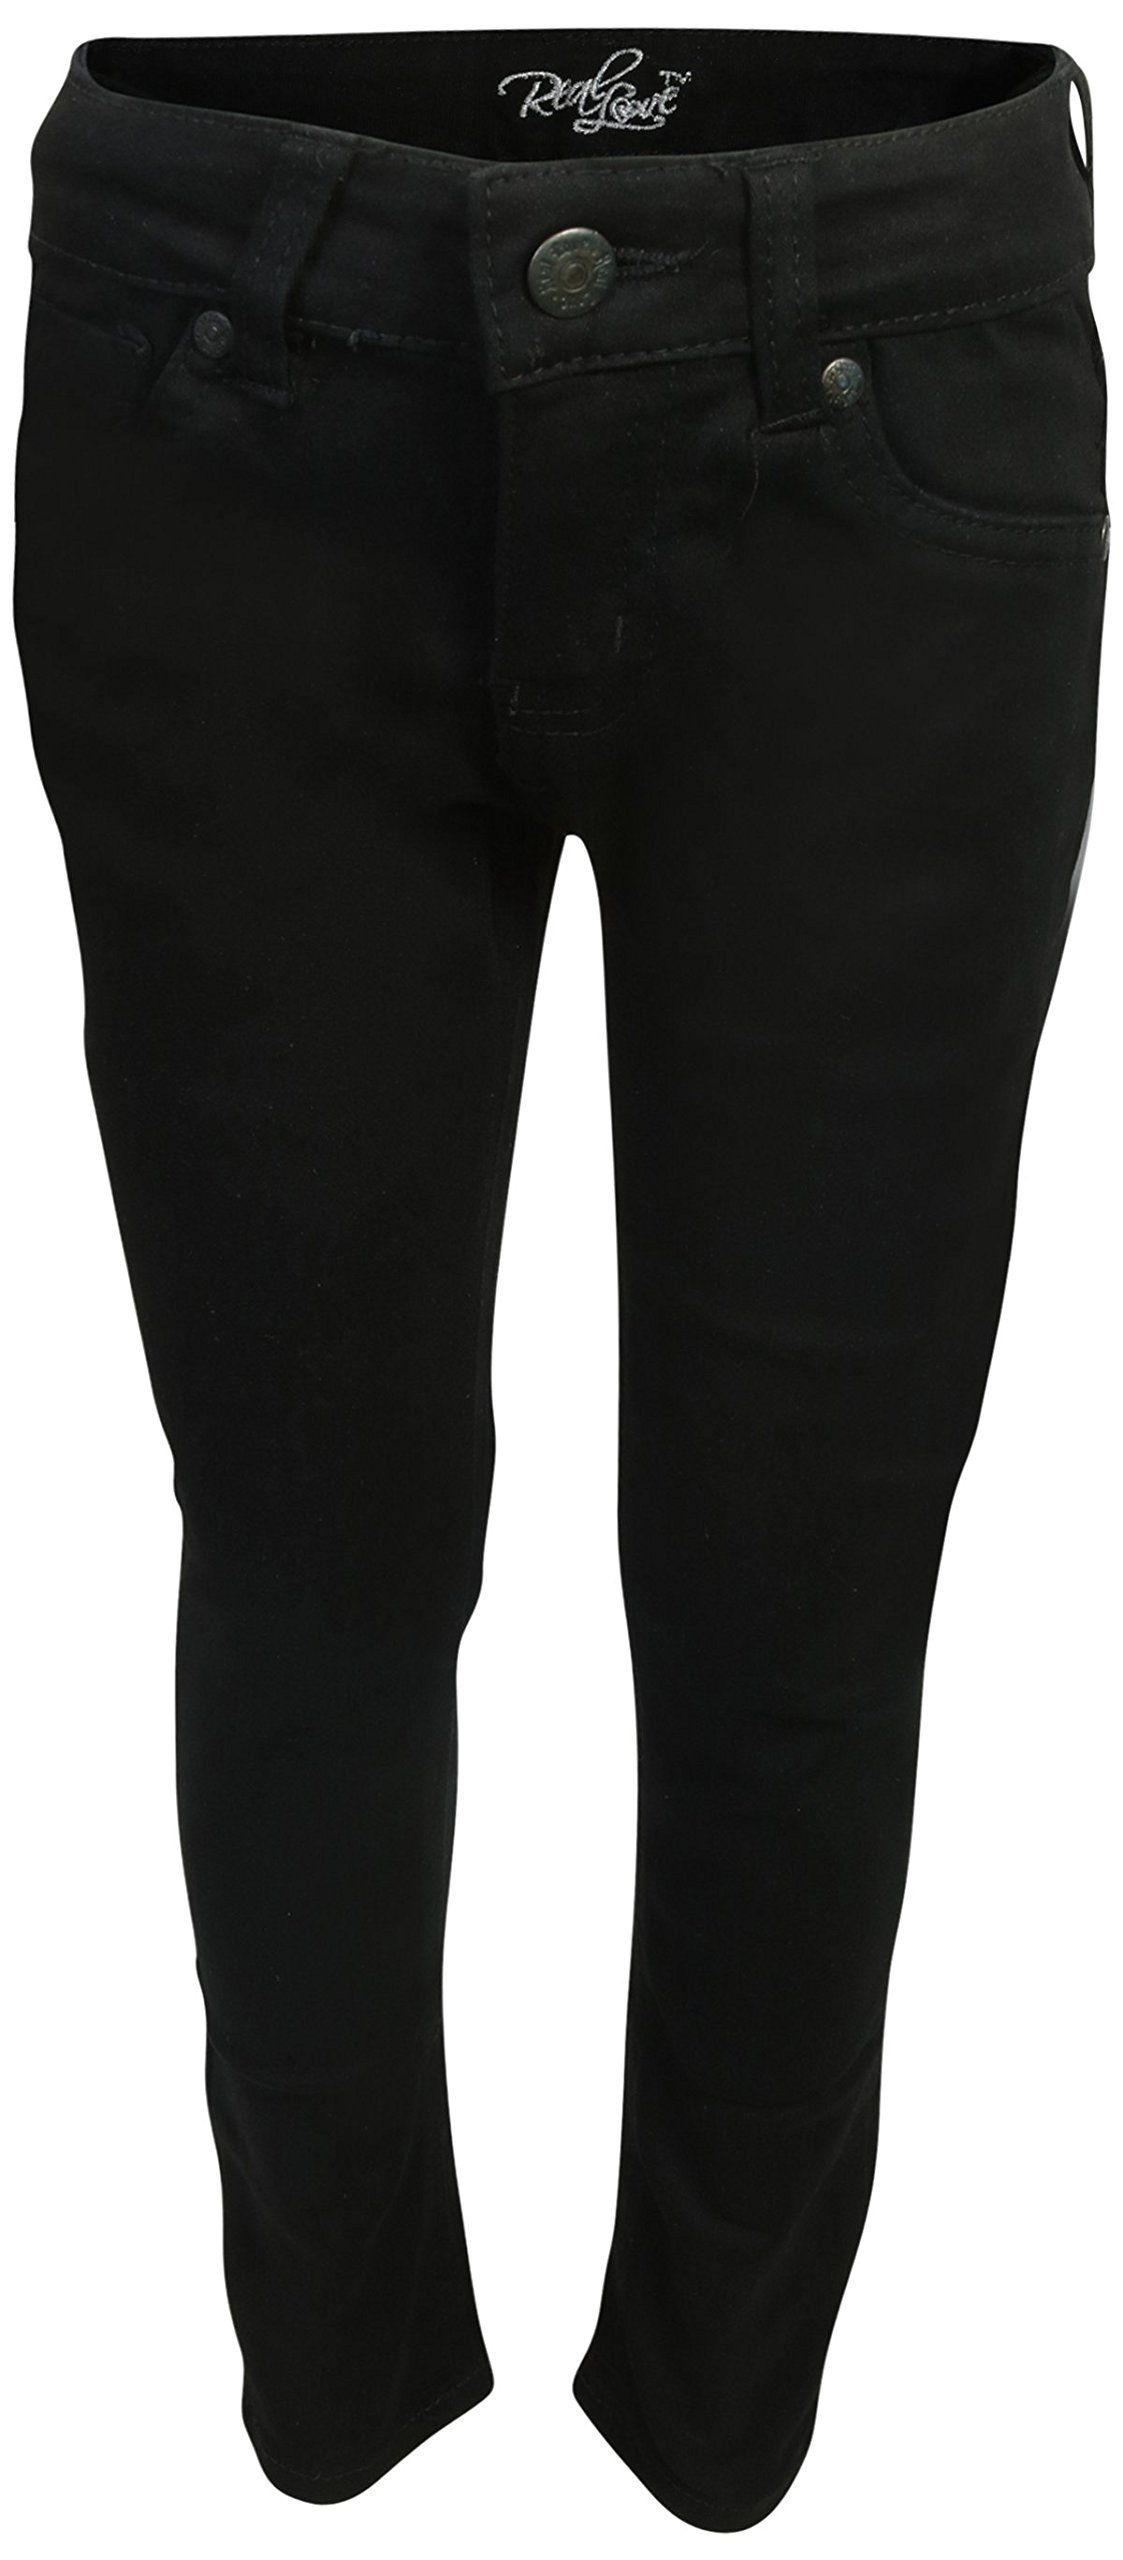 Real Love Girls Skinny Jeans, Black & Blue (2 Pack) Size 6 by Real Love (Image #2)